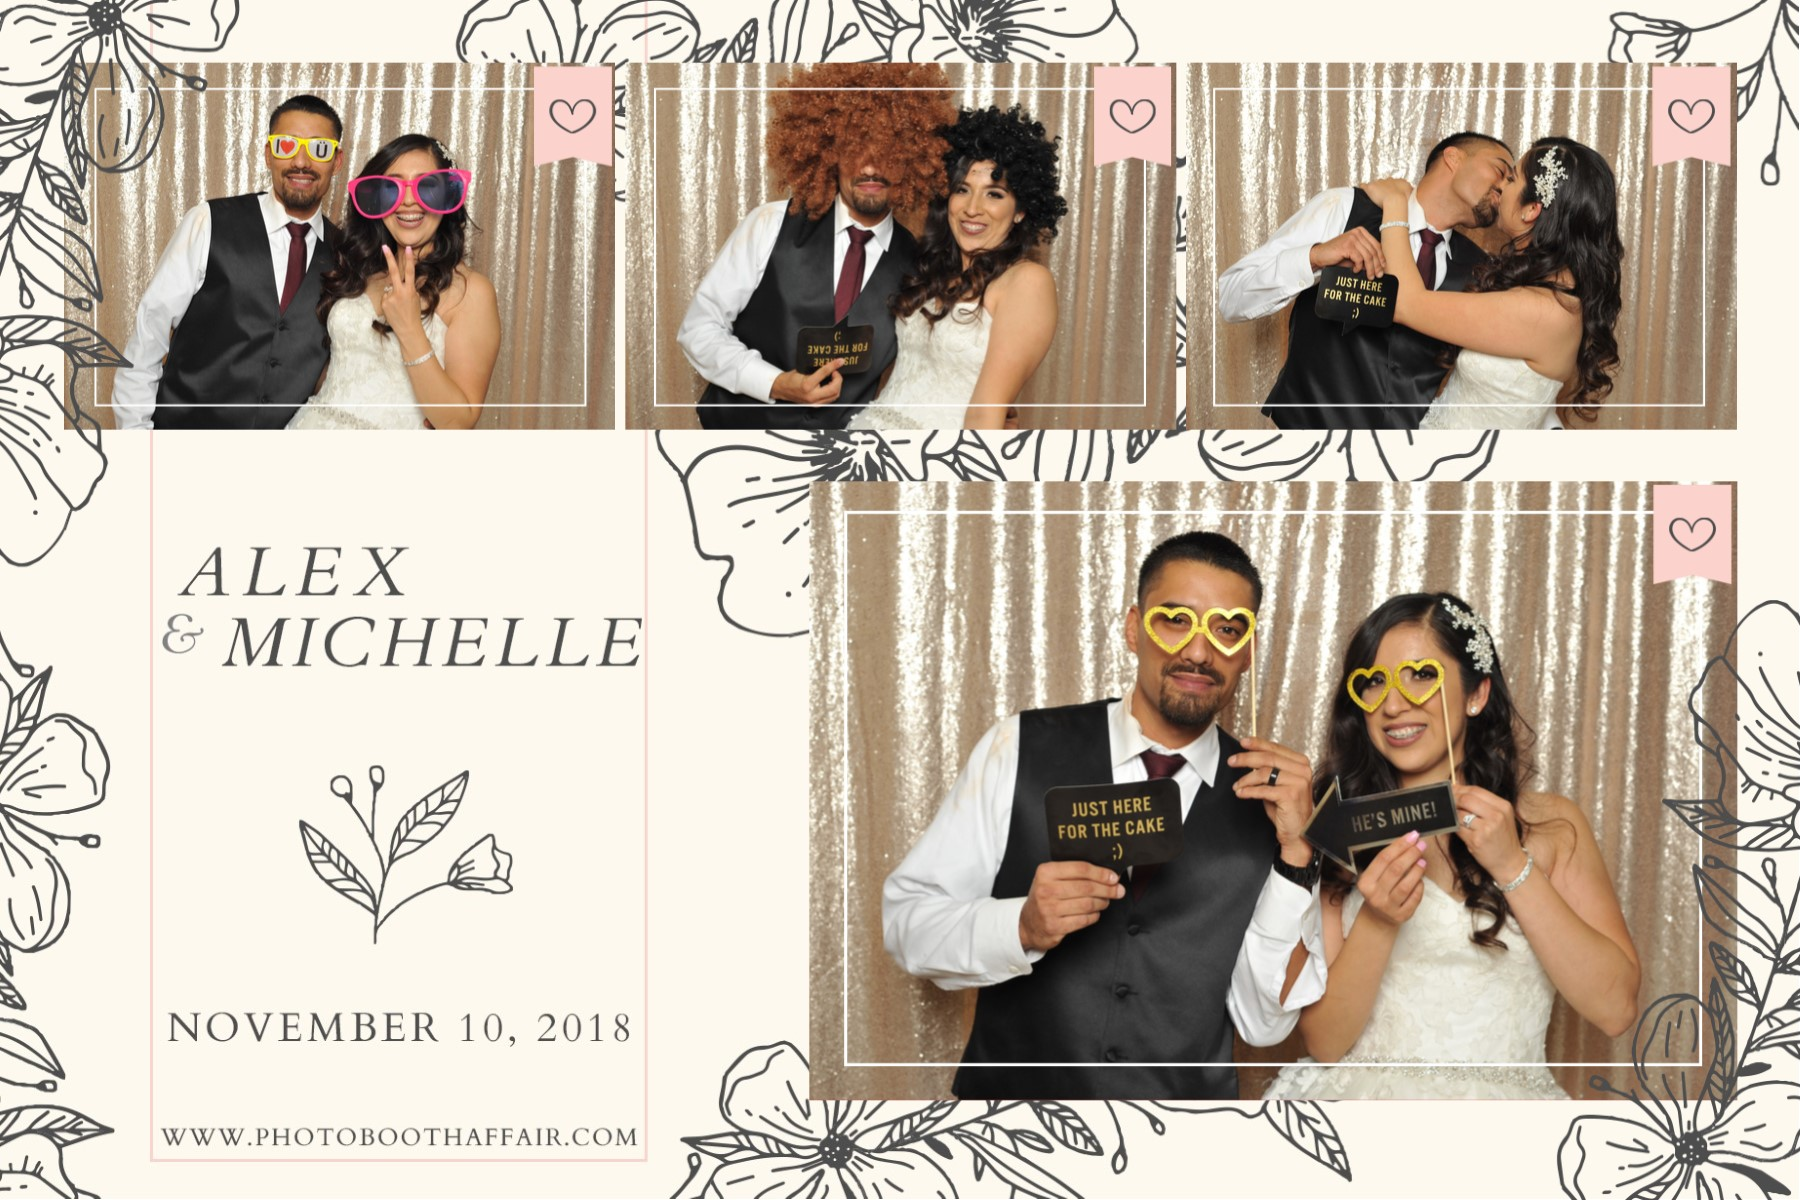 Alex + Michelle - Prints - Photo Booth A